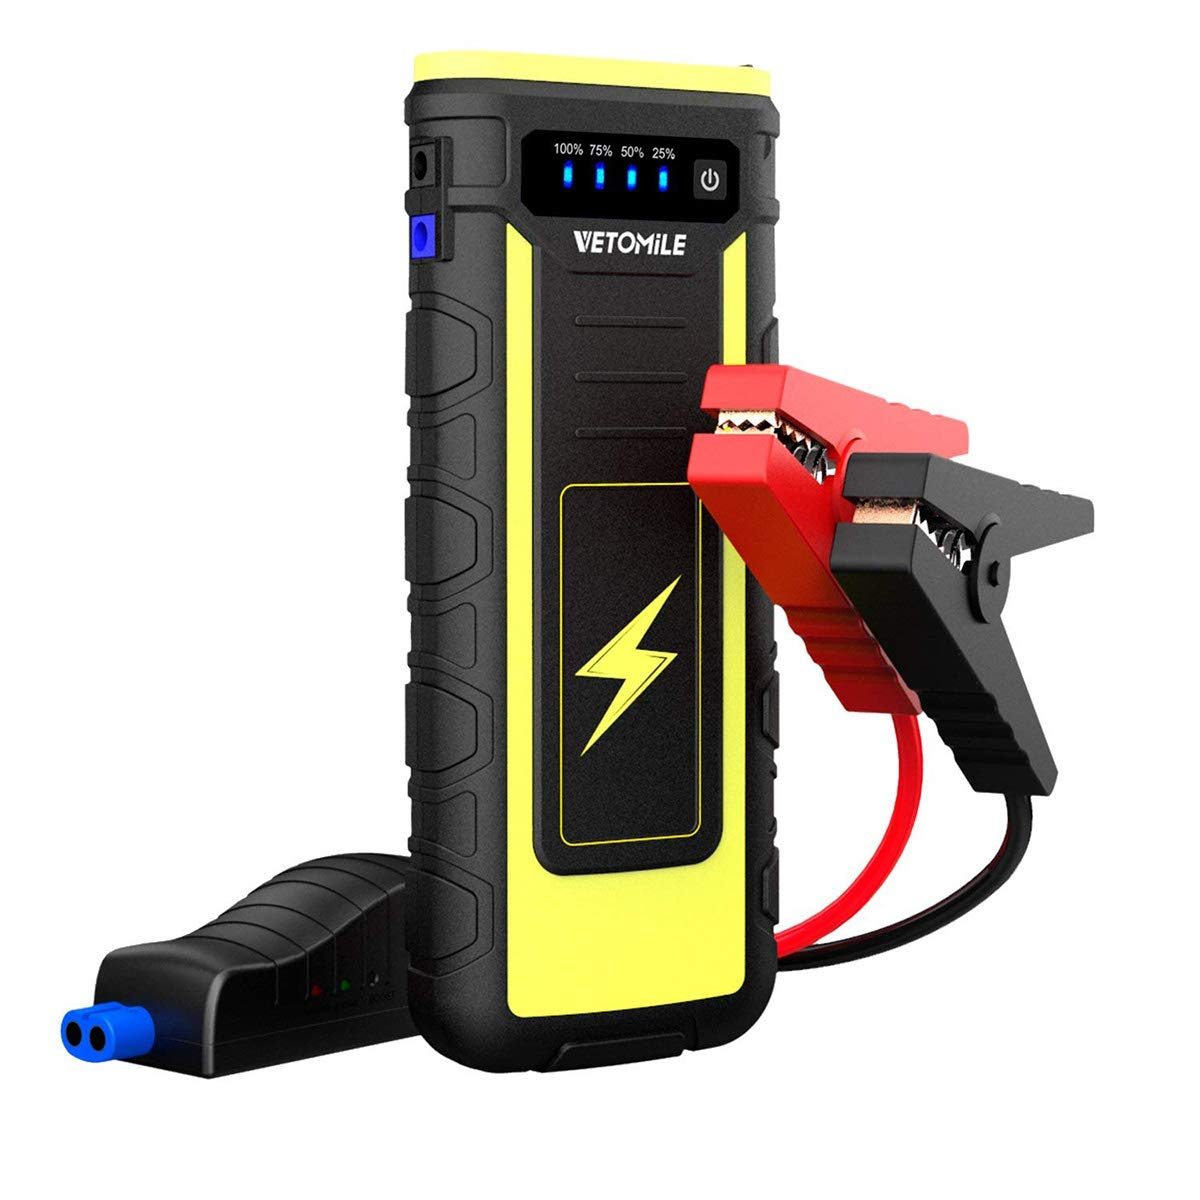 VETOMILE 800A Peak Car Jump Starter Booster Portable 21000mAH Auto Battery Charger Power Bank with USB charge Port and Flashlight,for Engines up to 6.5L Gas and 3.0L Diesel or Pickup Truck by VETOMILE